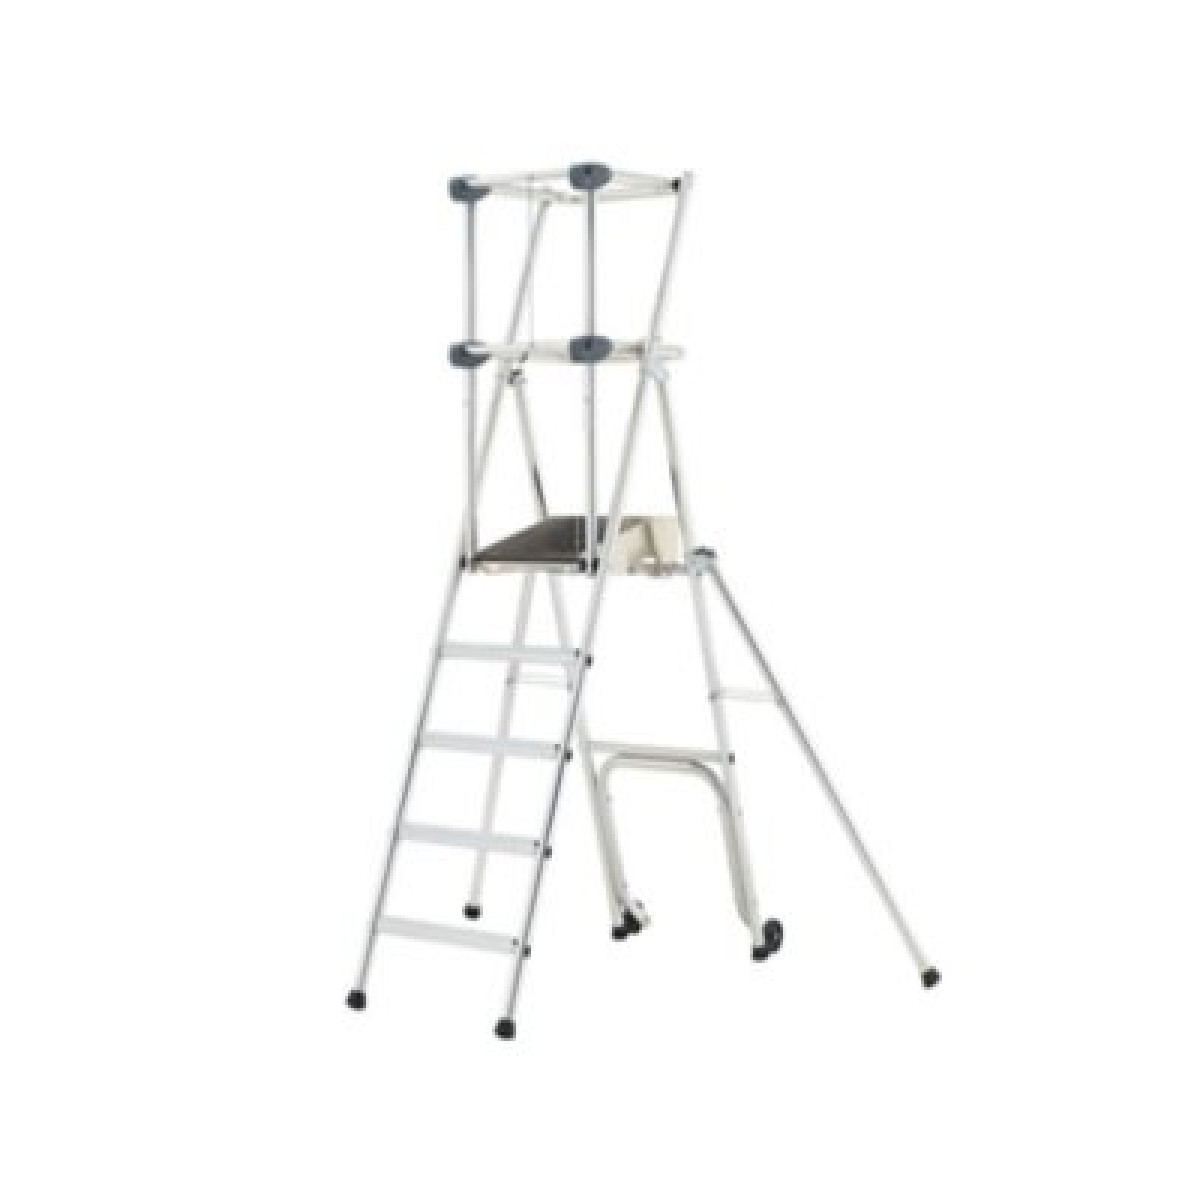 Zarges Profort Work Platform Platform Height 0 70m 3 Rungs